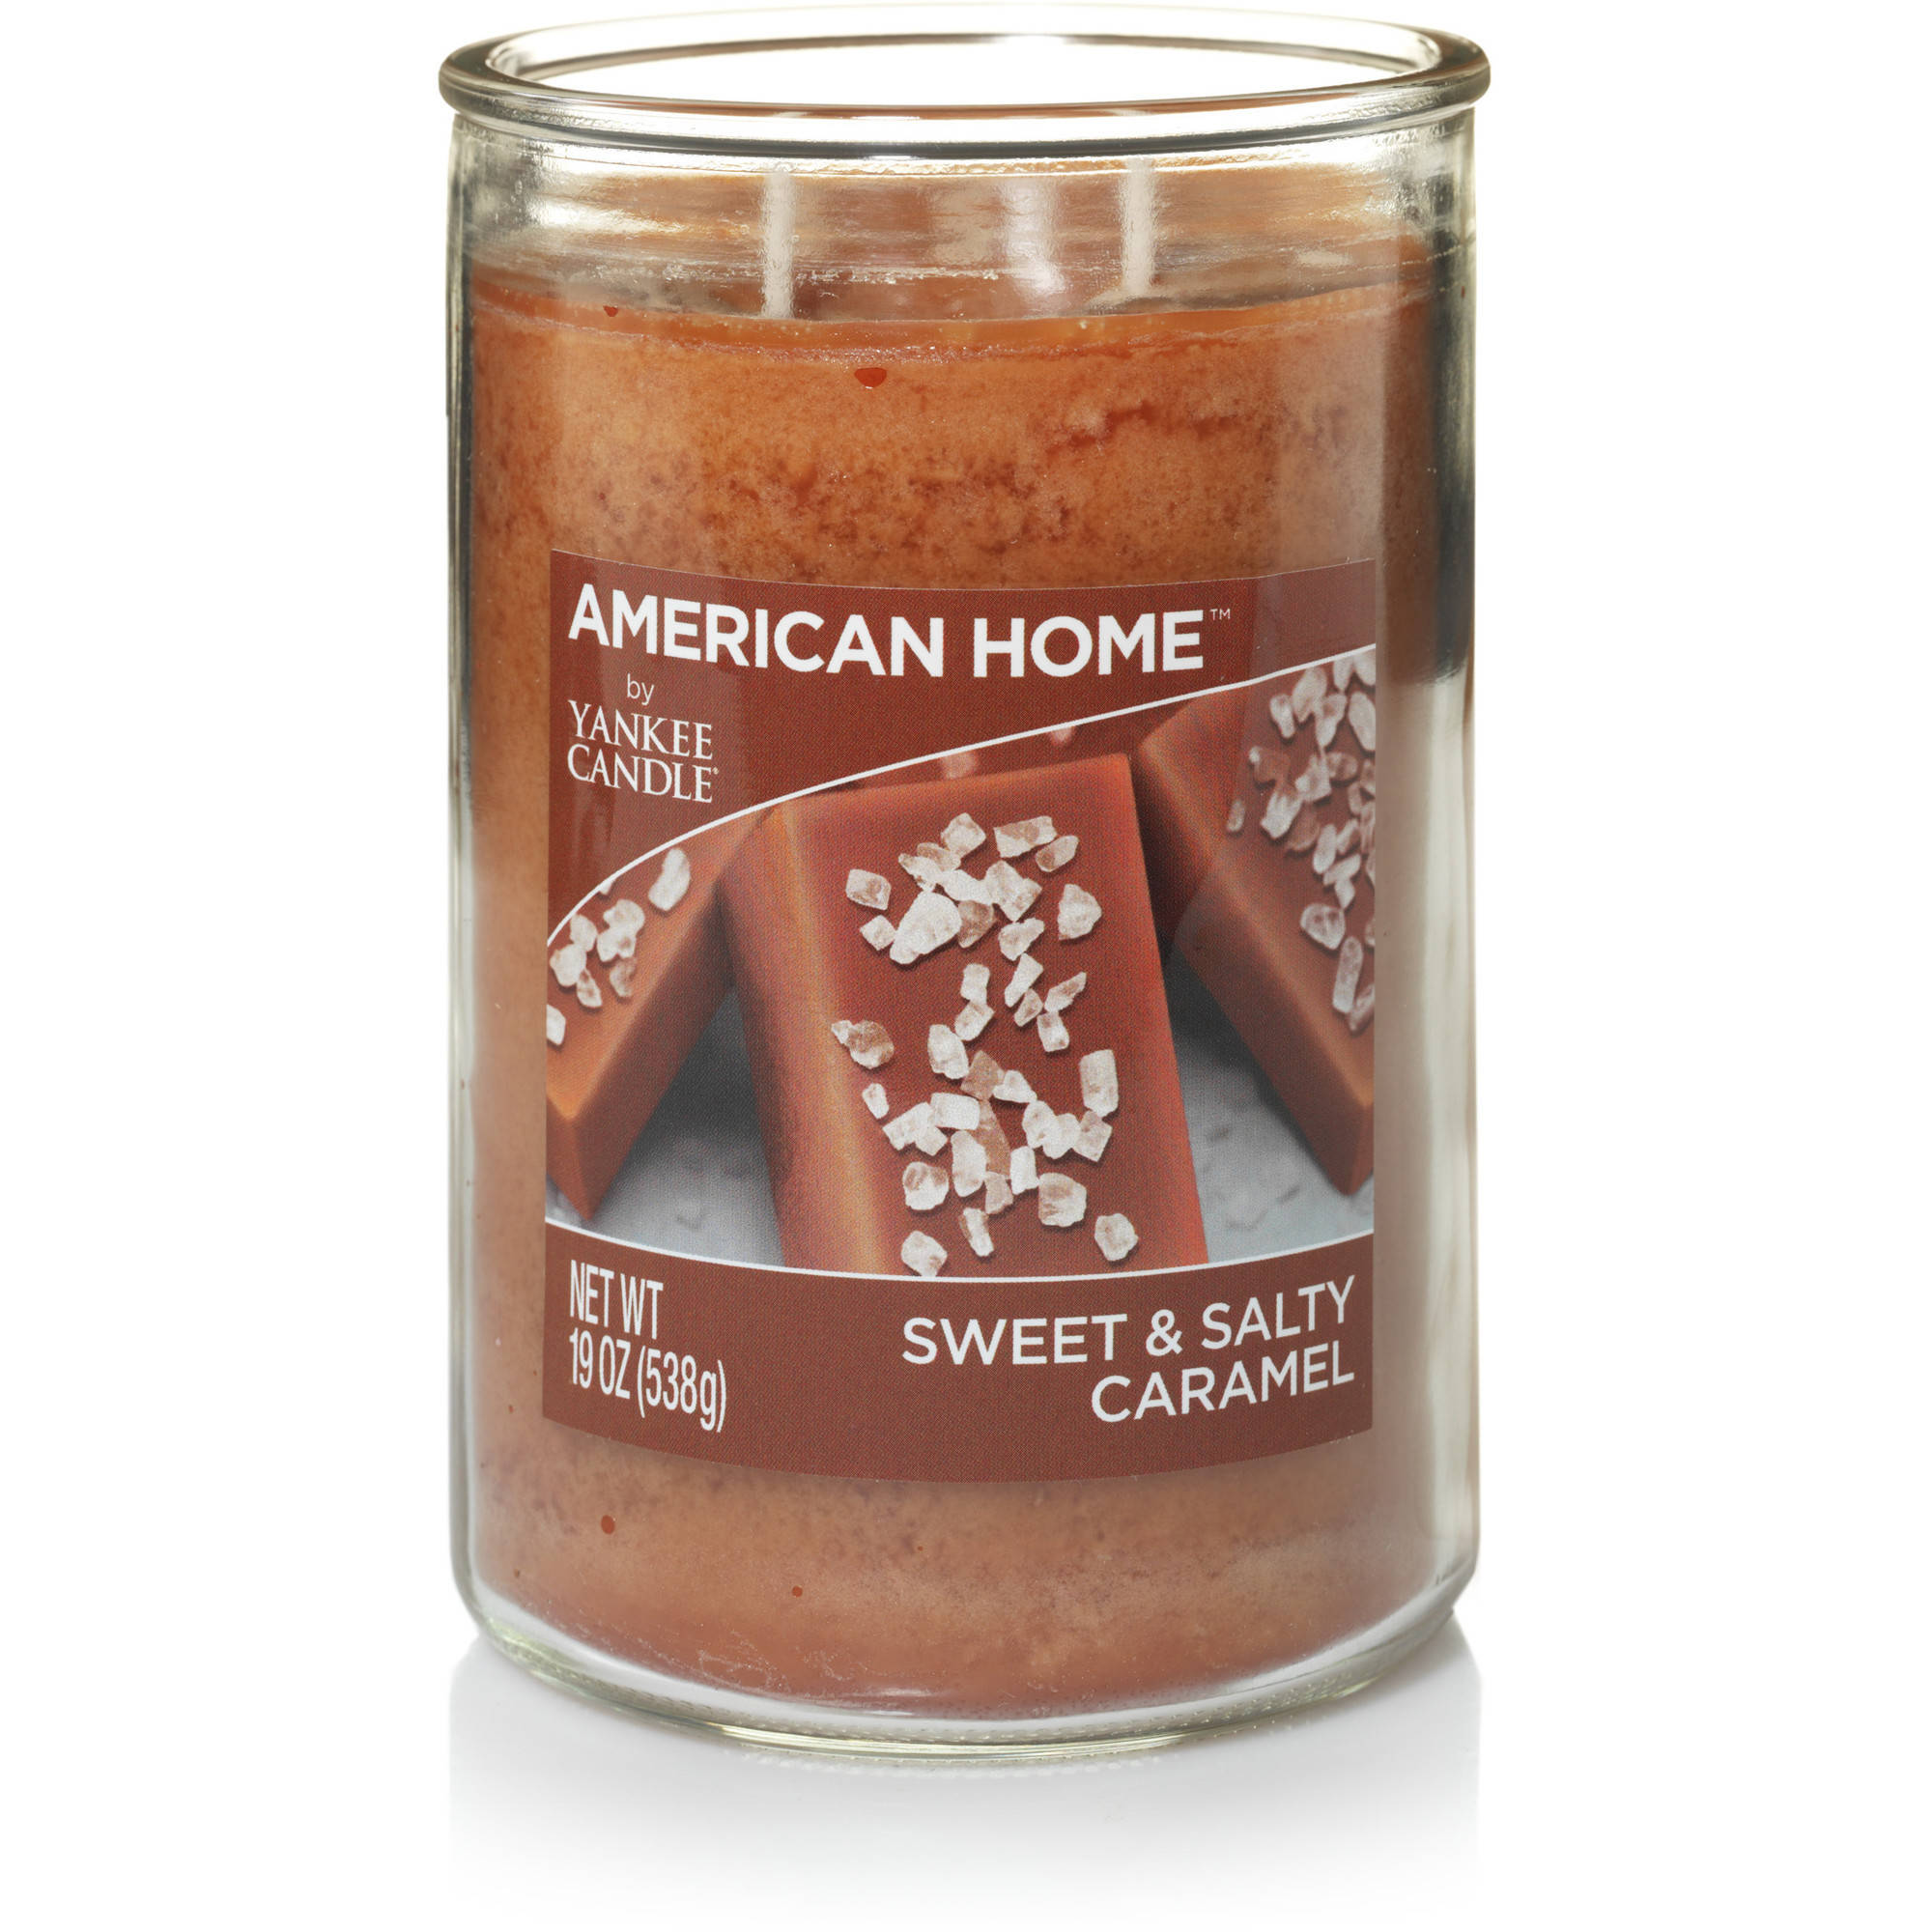 American Home by Yankee Candle Sweet & Salty Caramel, 19 oz Large 2-Wick Tumbler